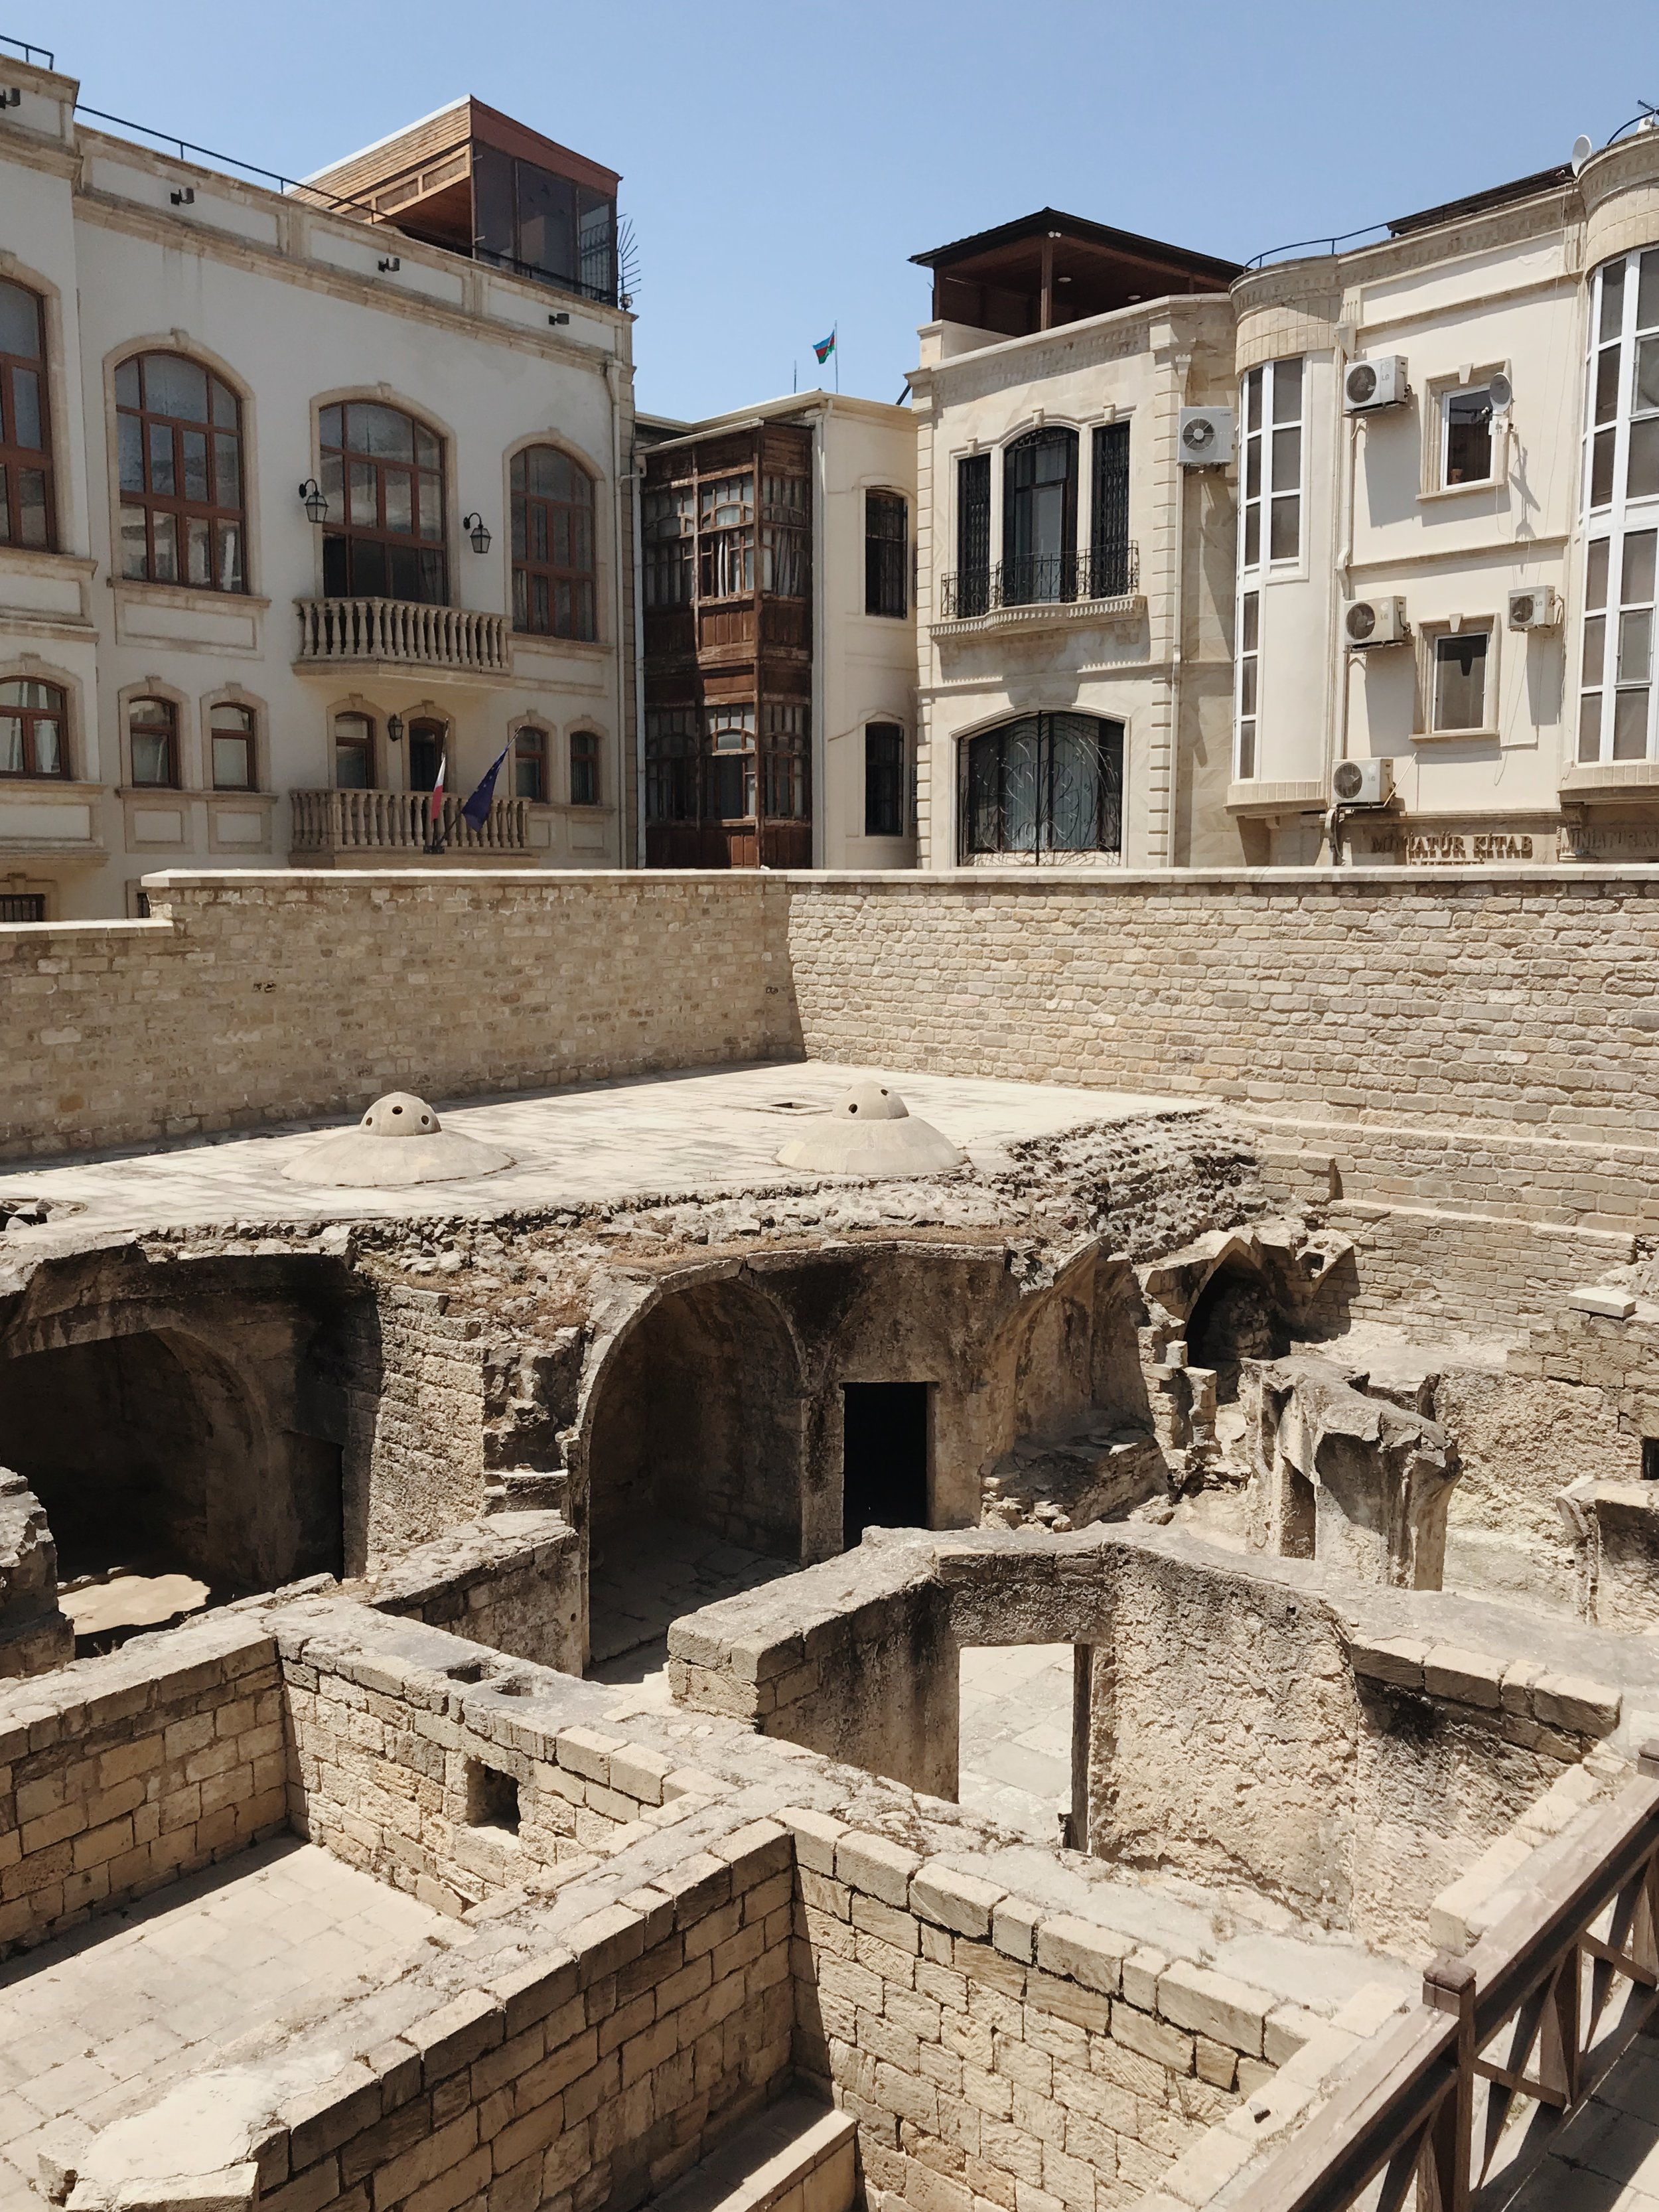 Ruins of the Shirvanshahs bathhouse where my aunt would play hide-and-seek as a kid.